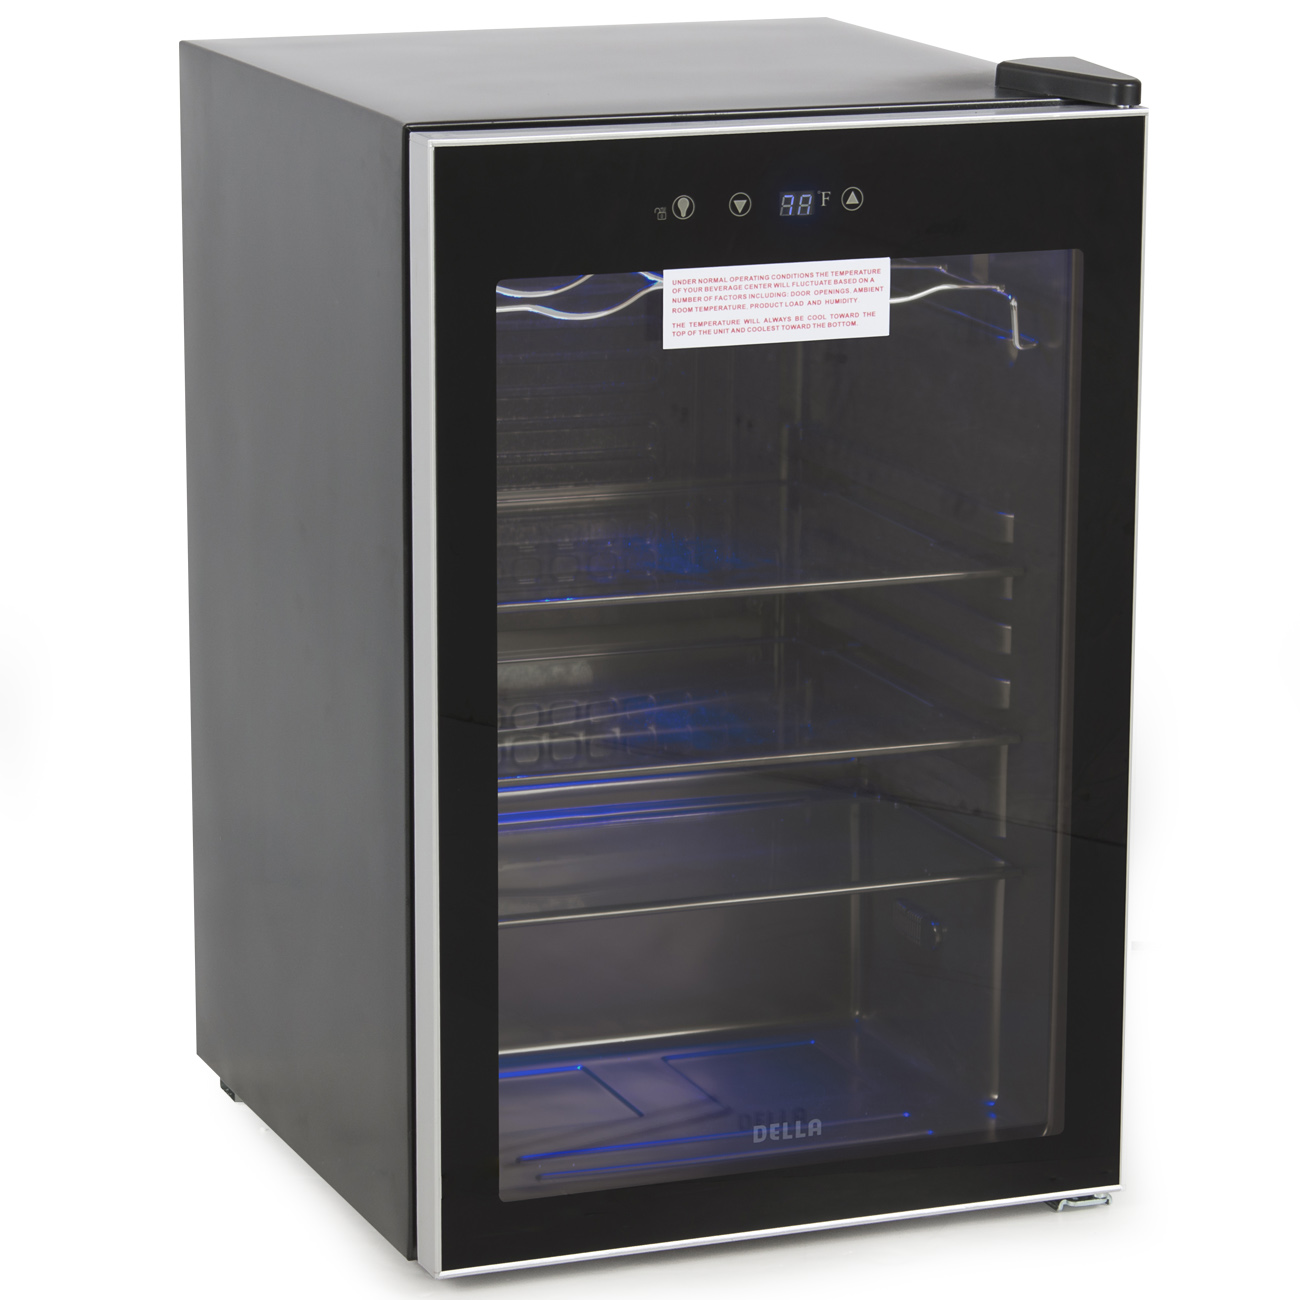 Digital Touch Led Beverage Wine Cooler Chiller Rack Mini